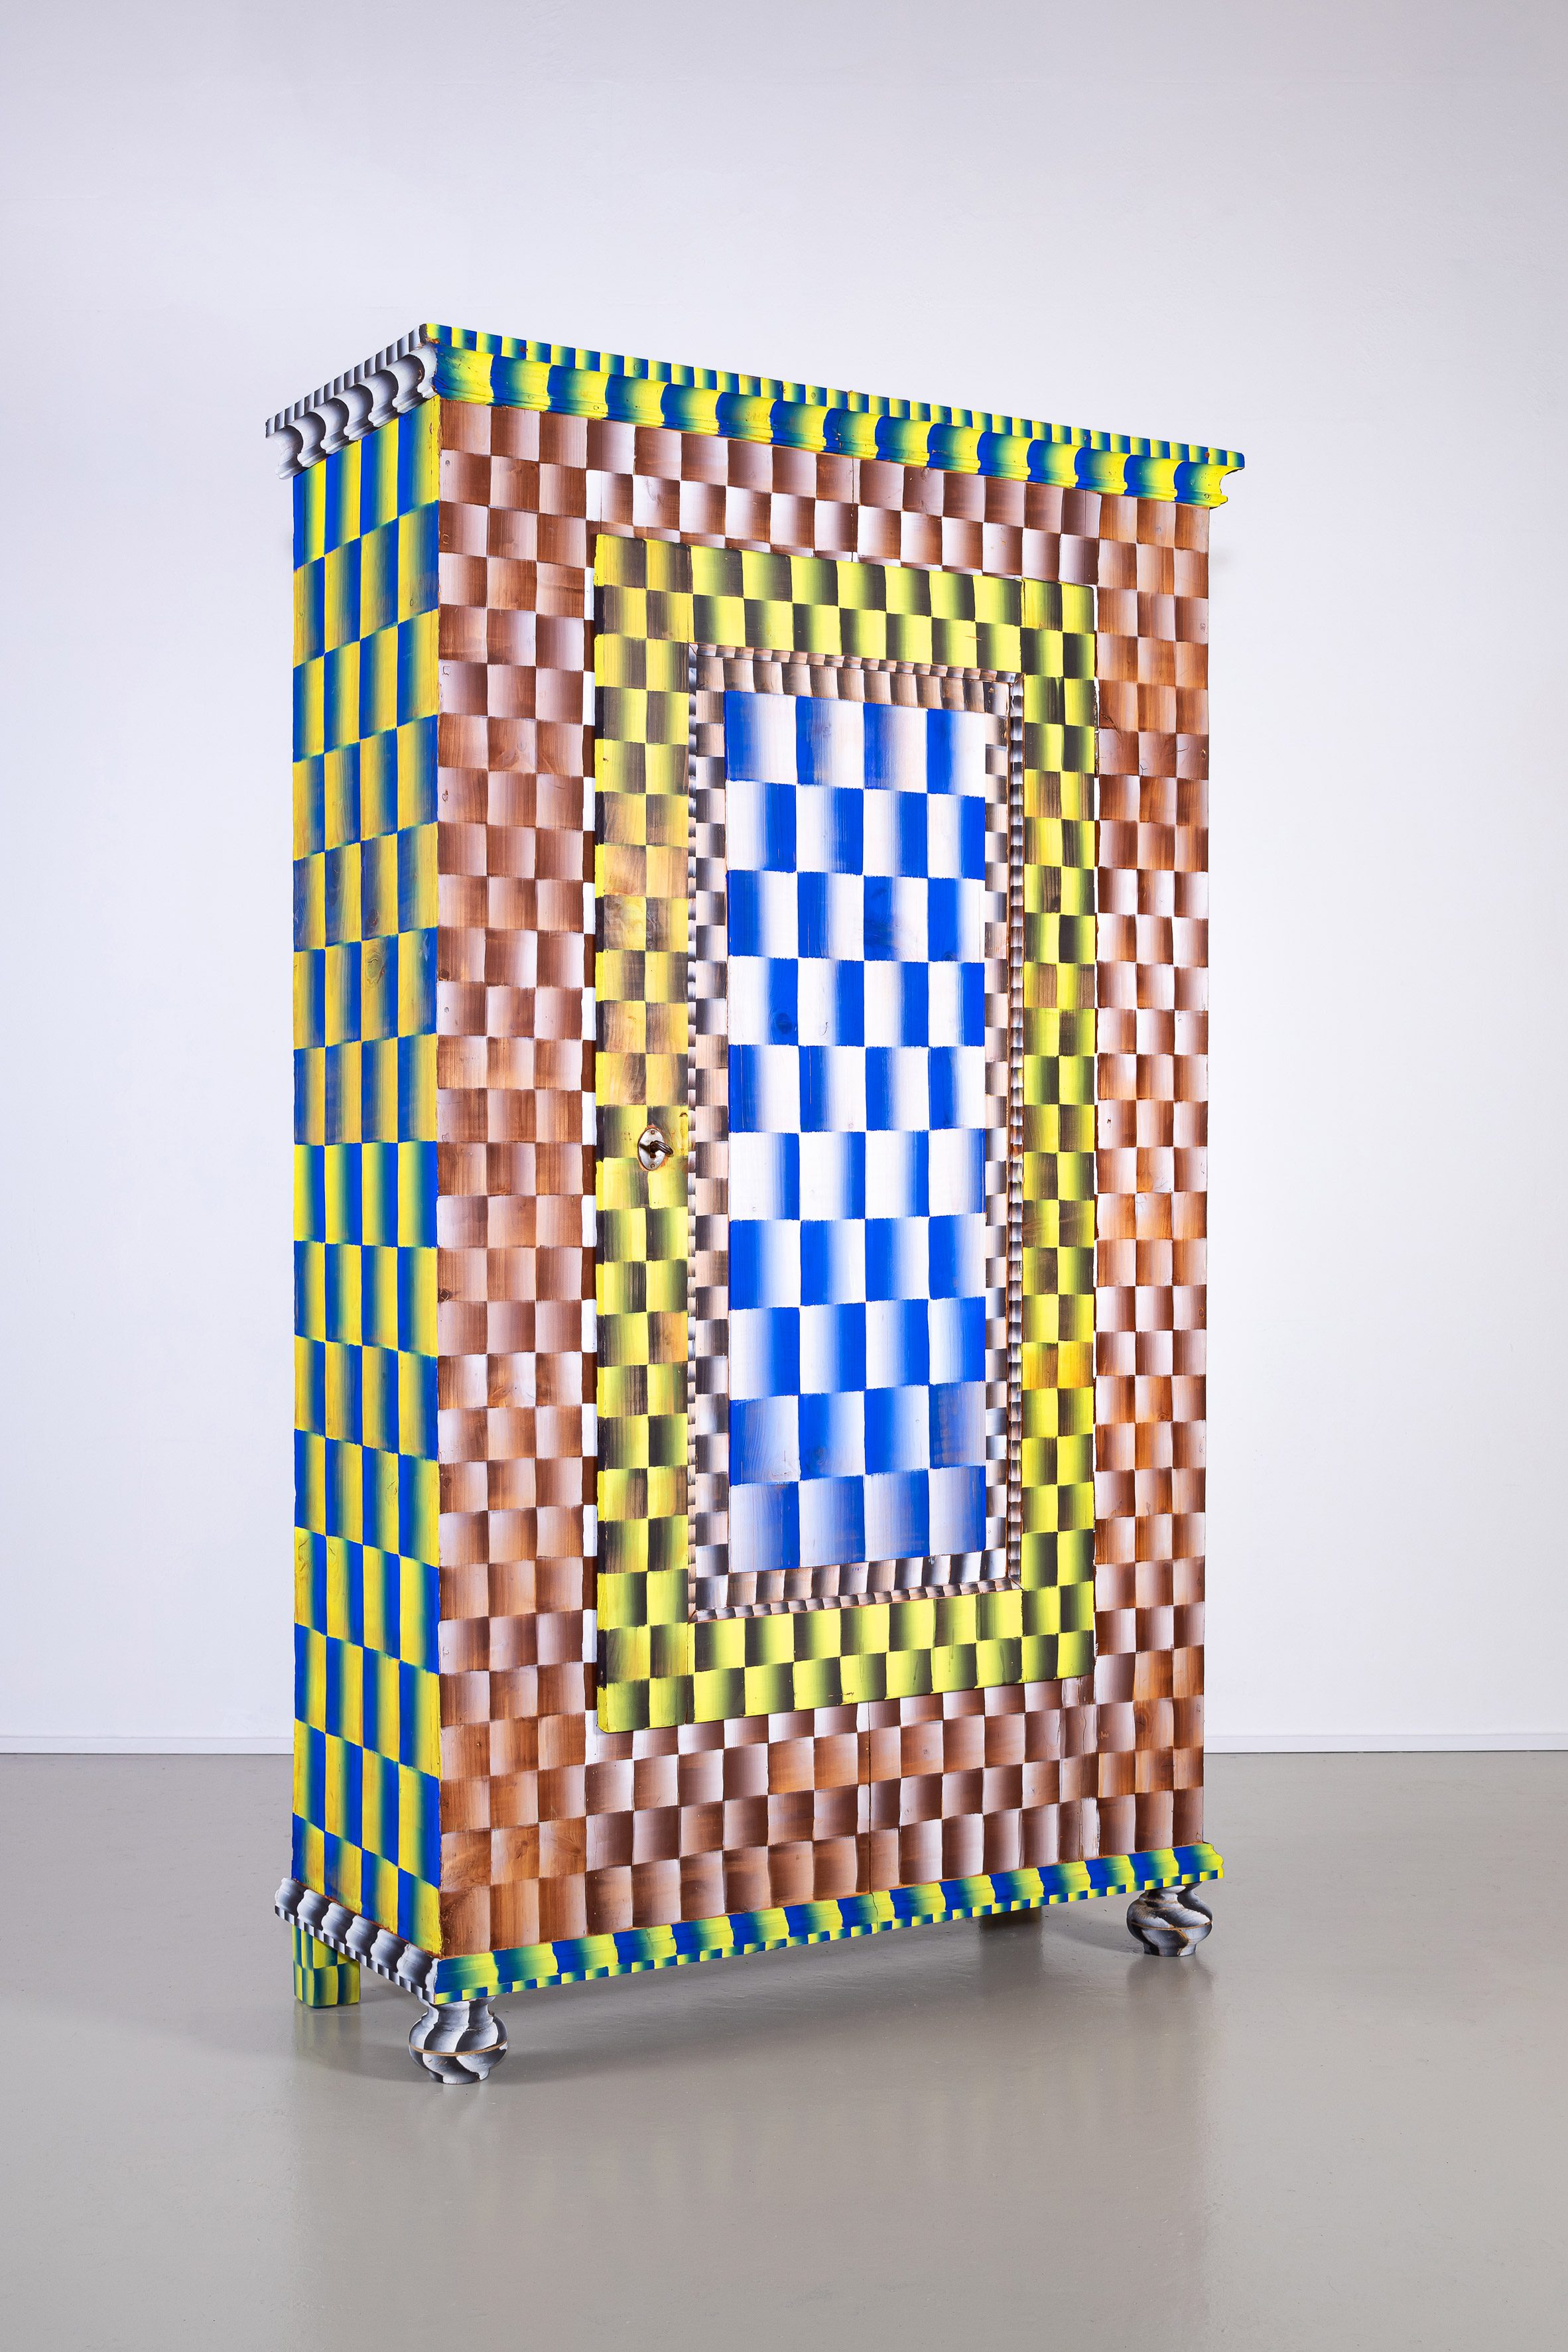 A photograph of a colourful up-cycled cabinet as part of London Design Festival